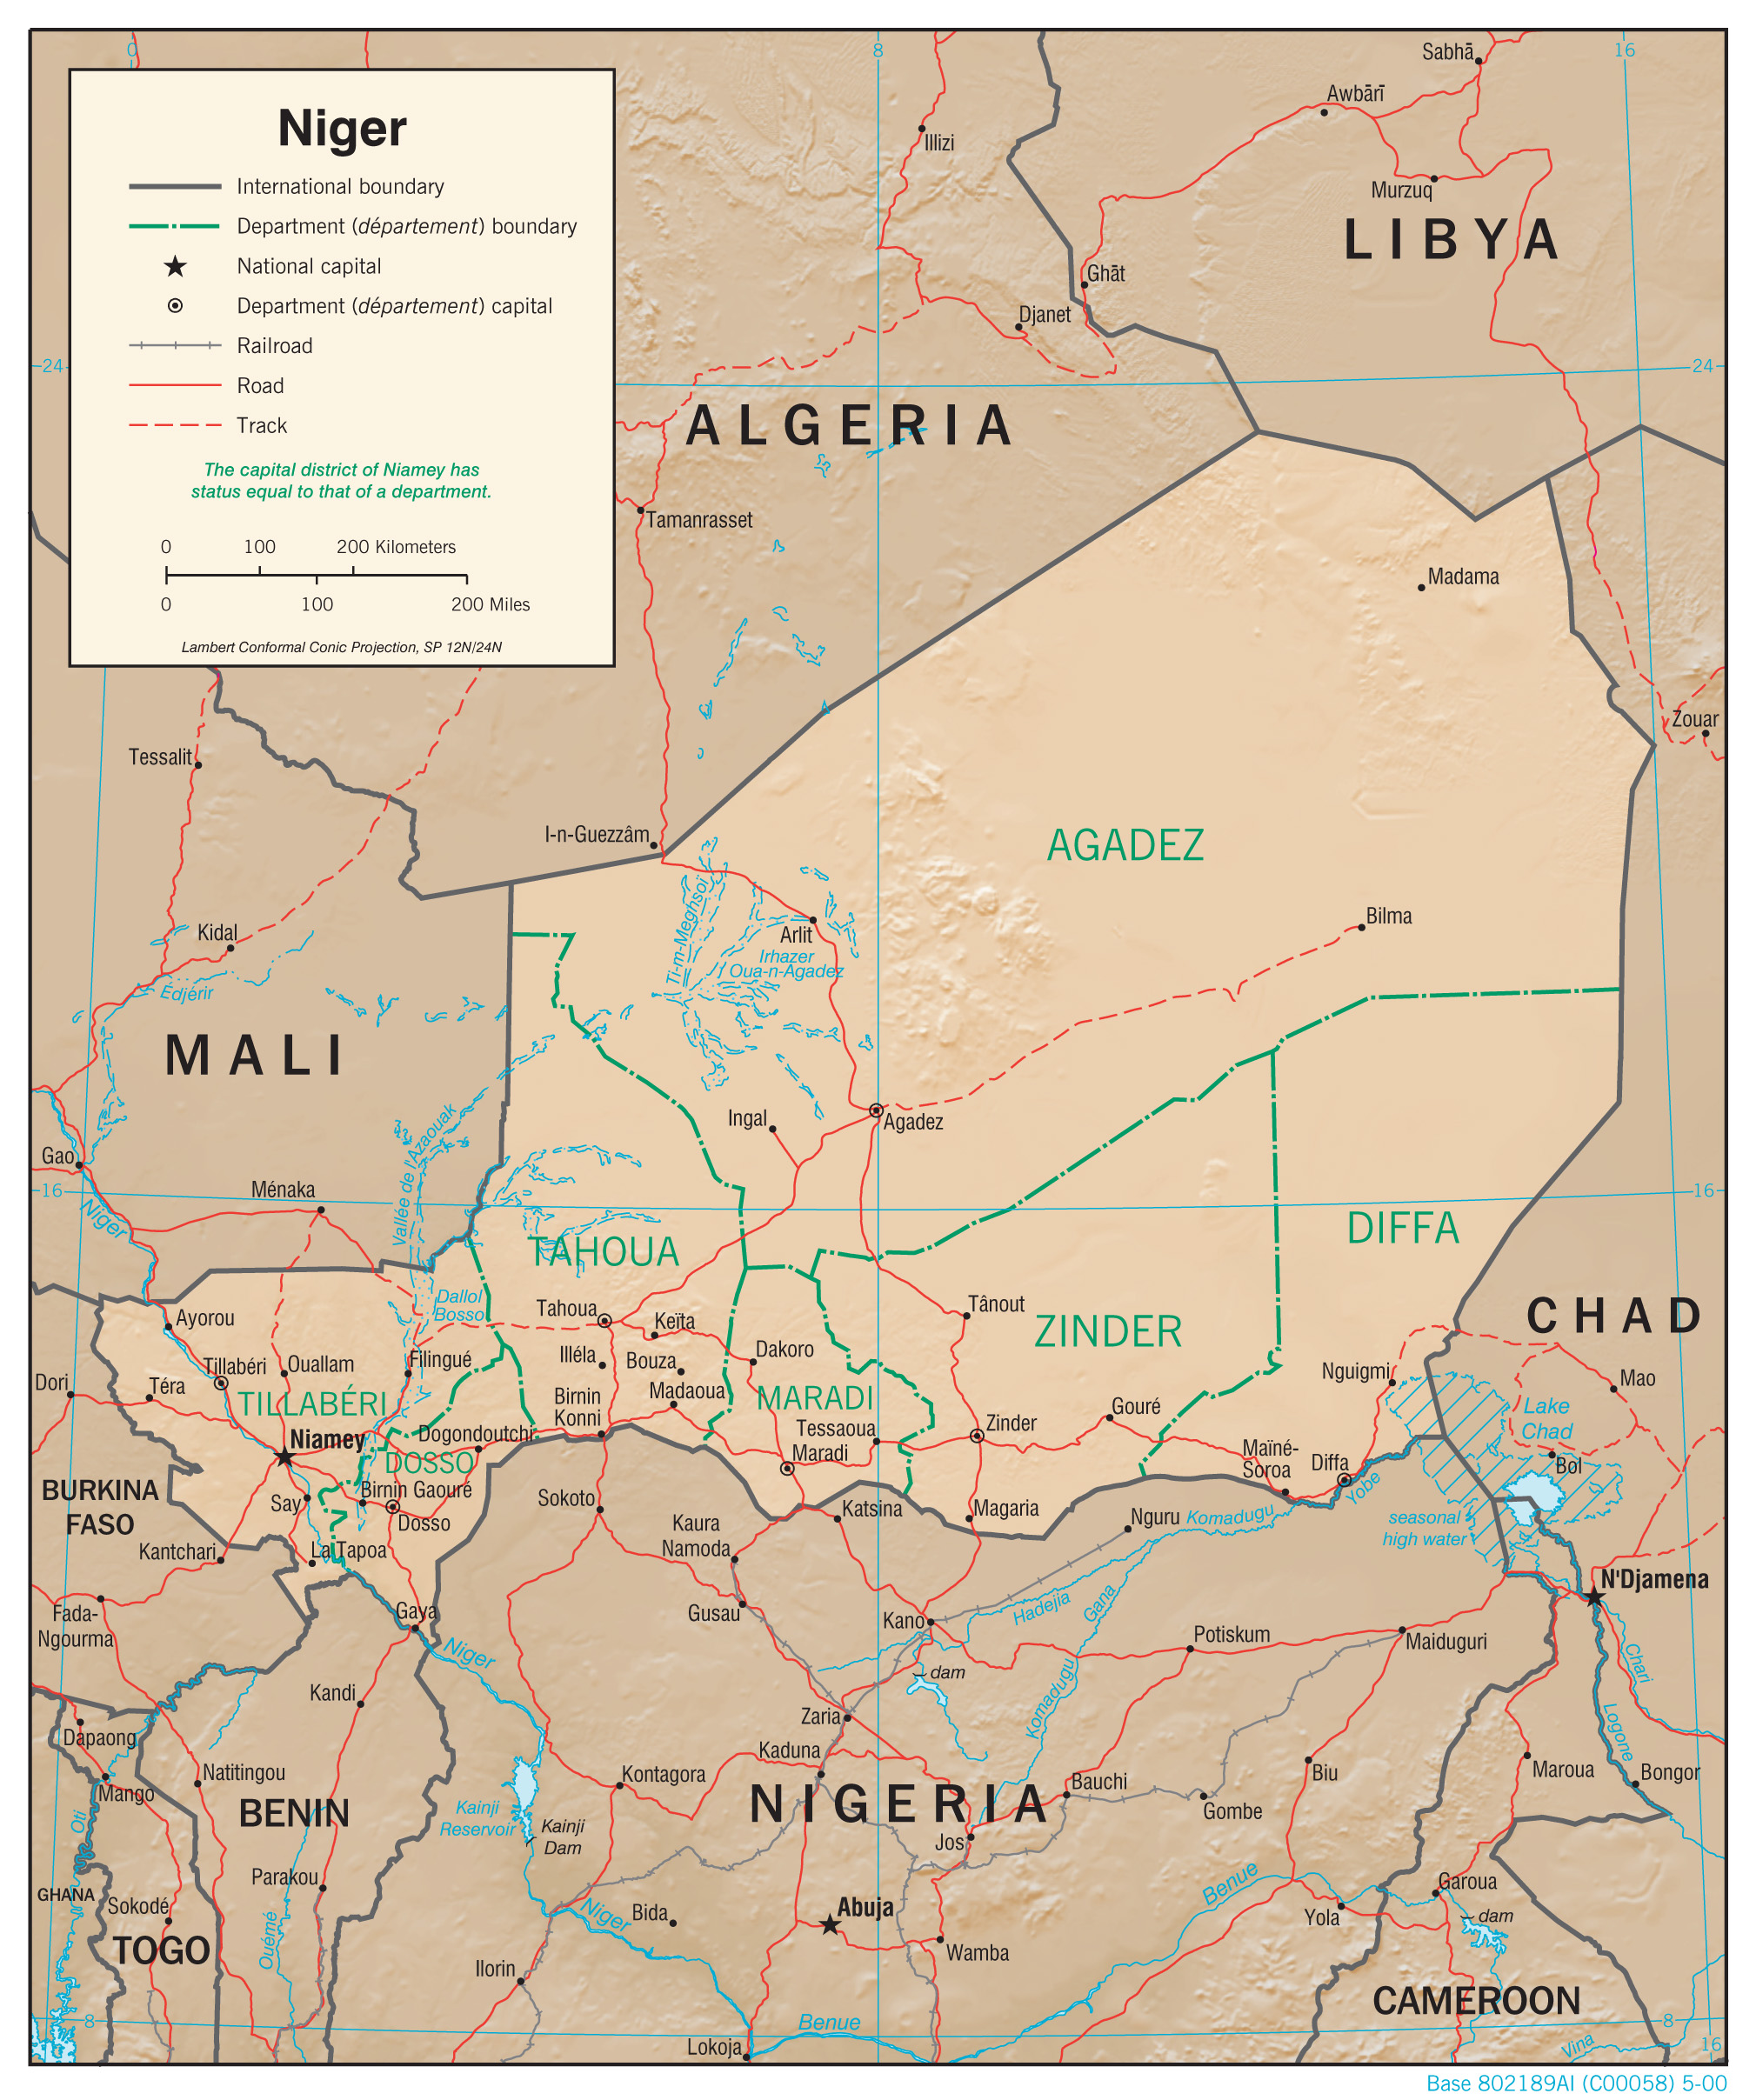 Niger Maps - Perry-Castañeda Map Collection - UT Library Online